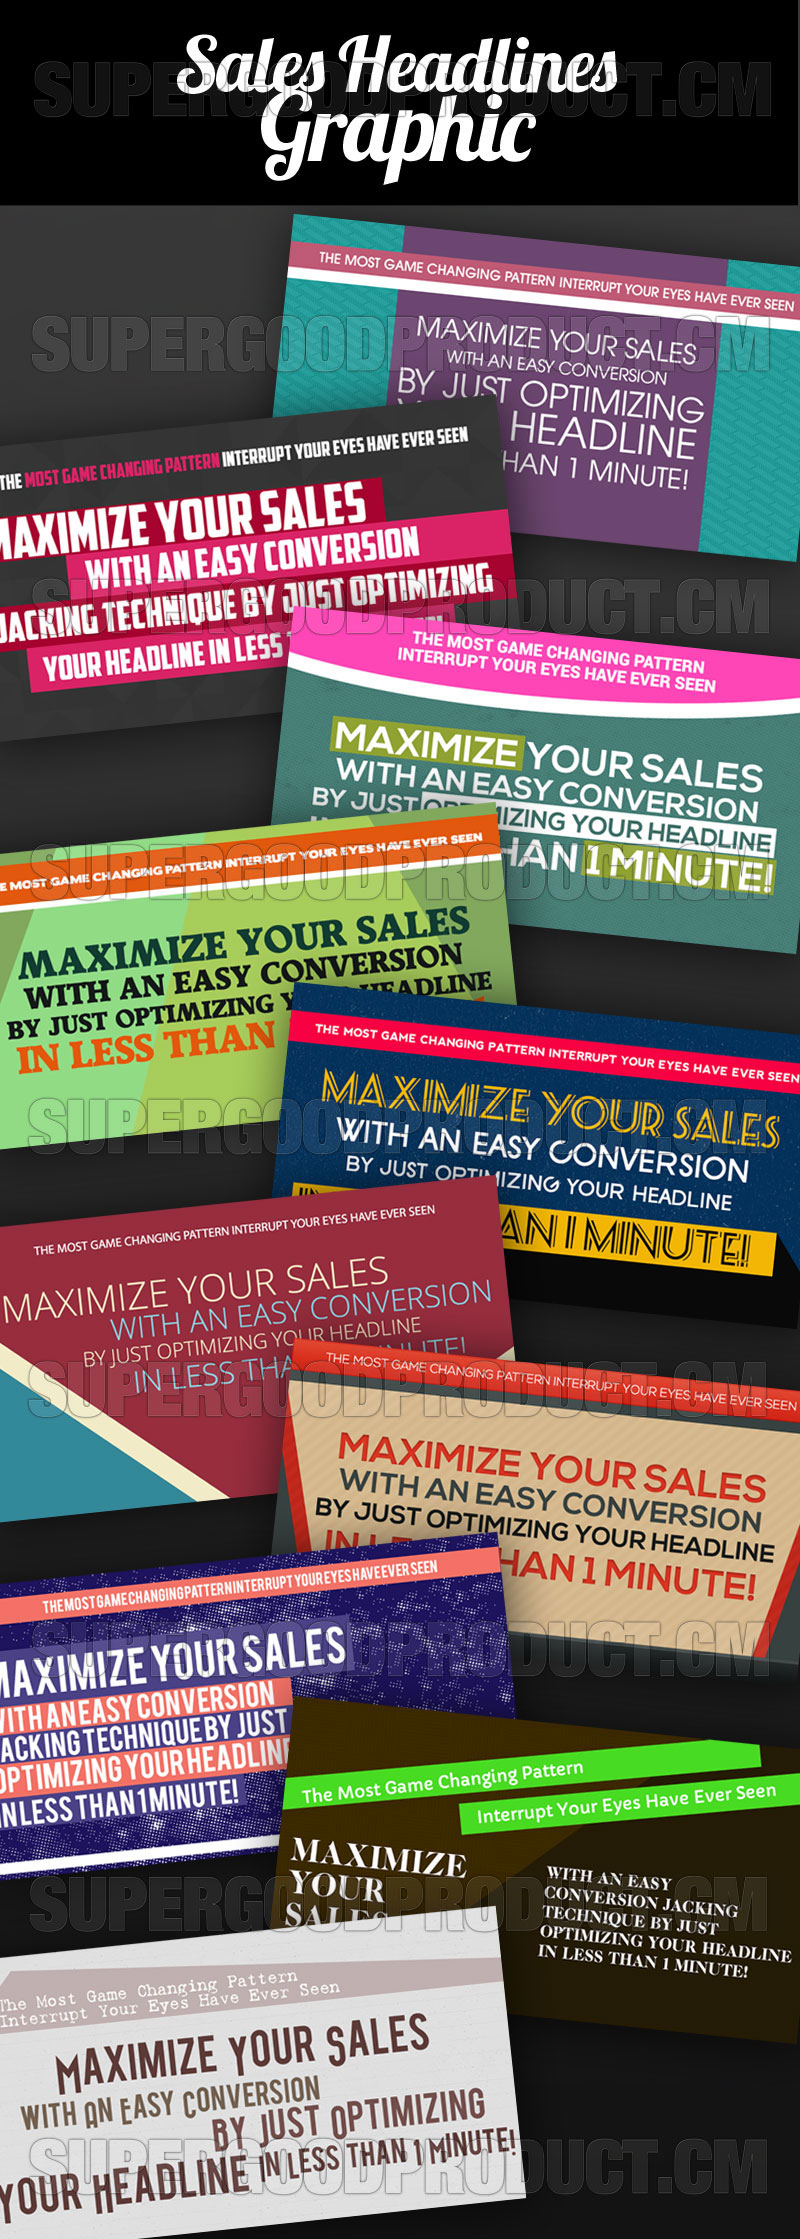 Sales-Headlines-Graphic